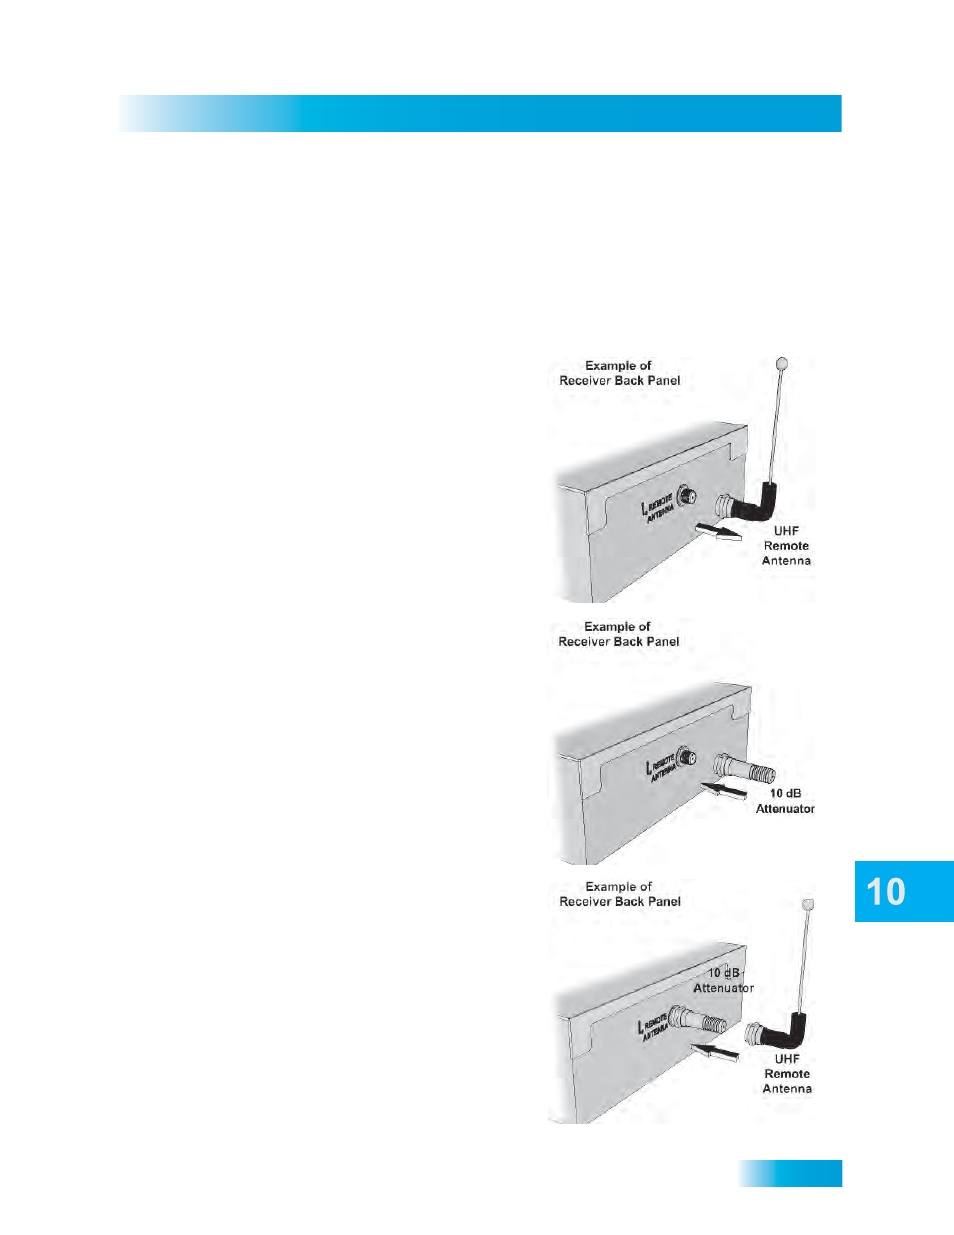 Remote control setup, Installing a uhf attenuator | Dish Network SoloDVR  ViP 612 User Manual | Page 70 / 135